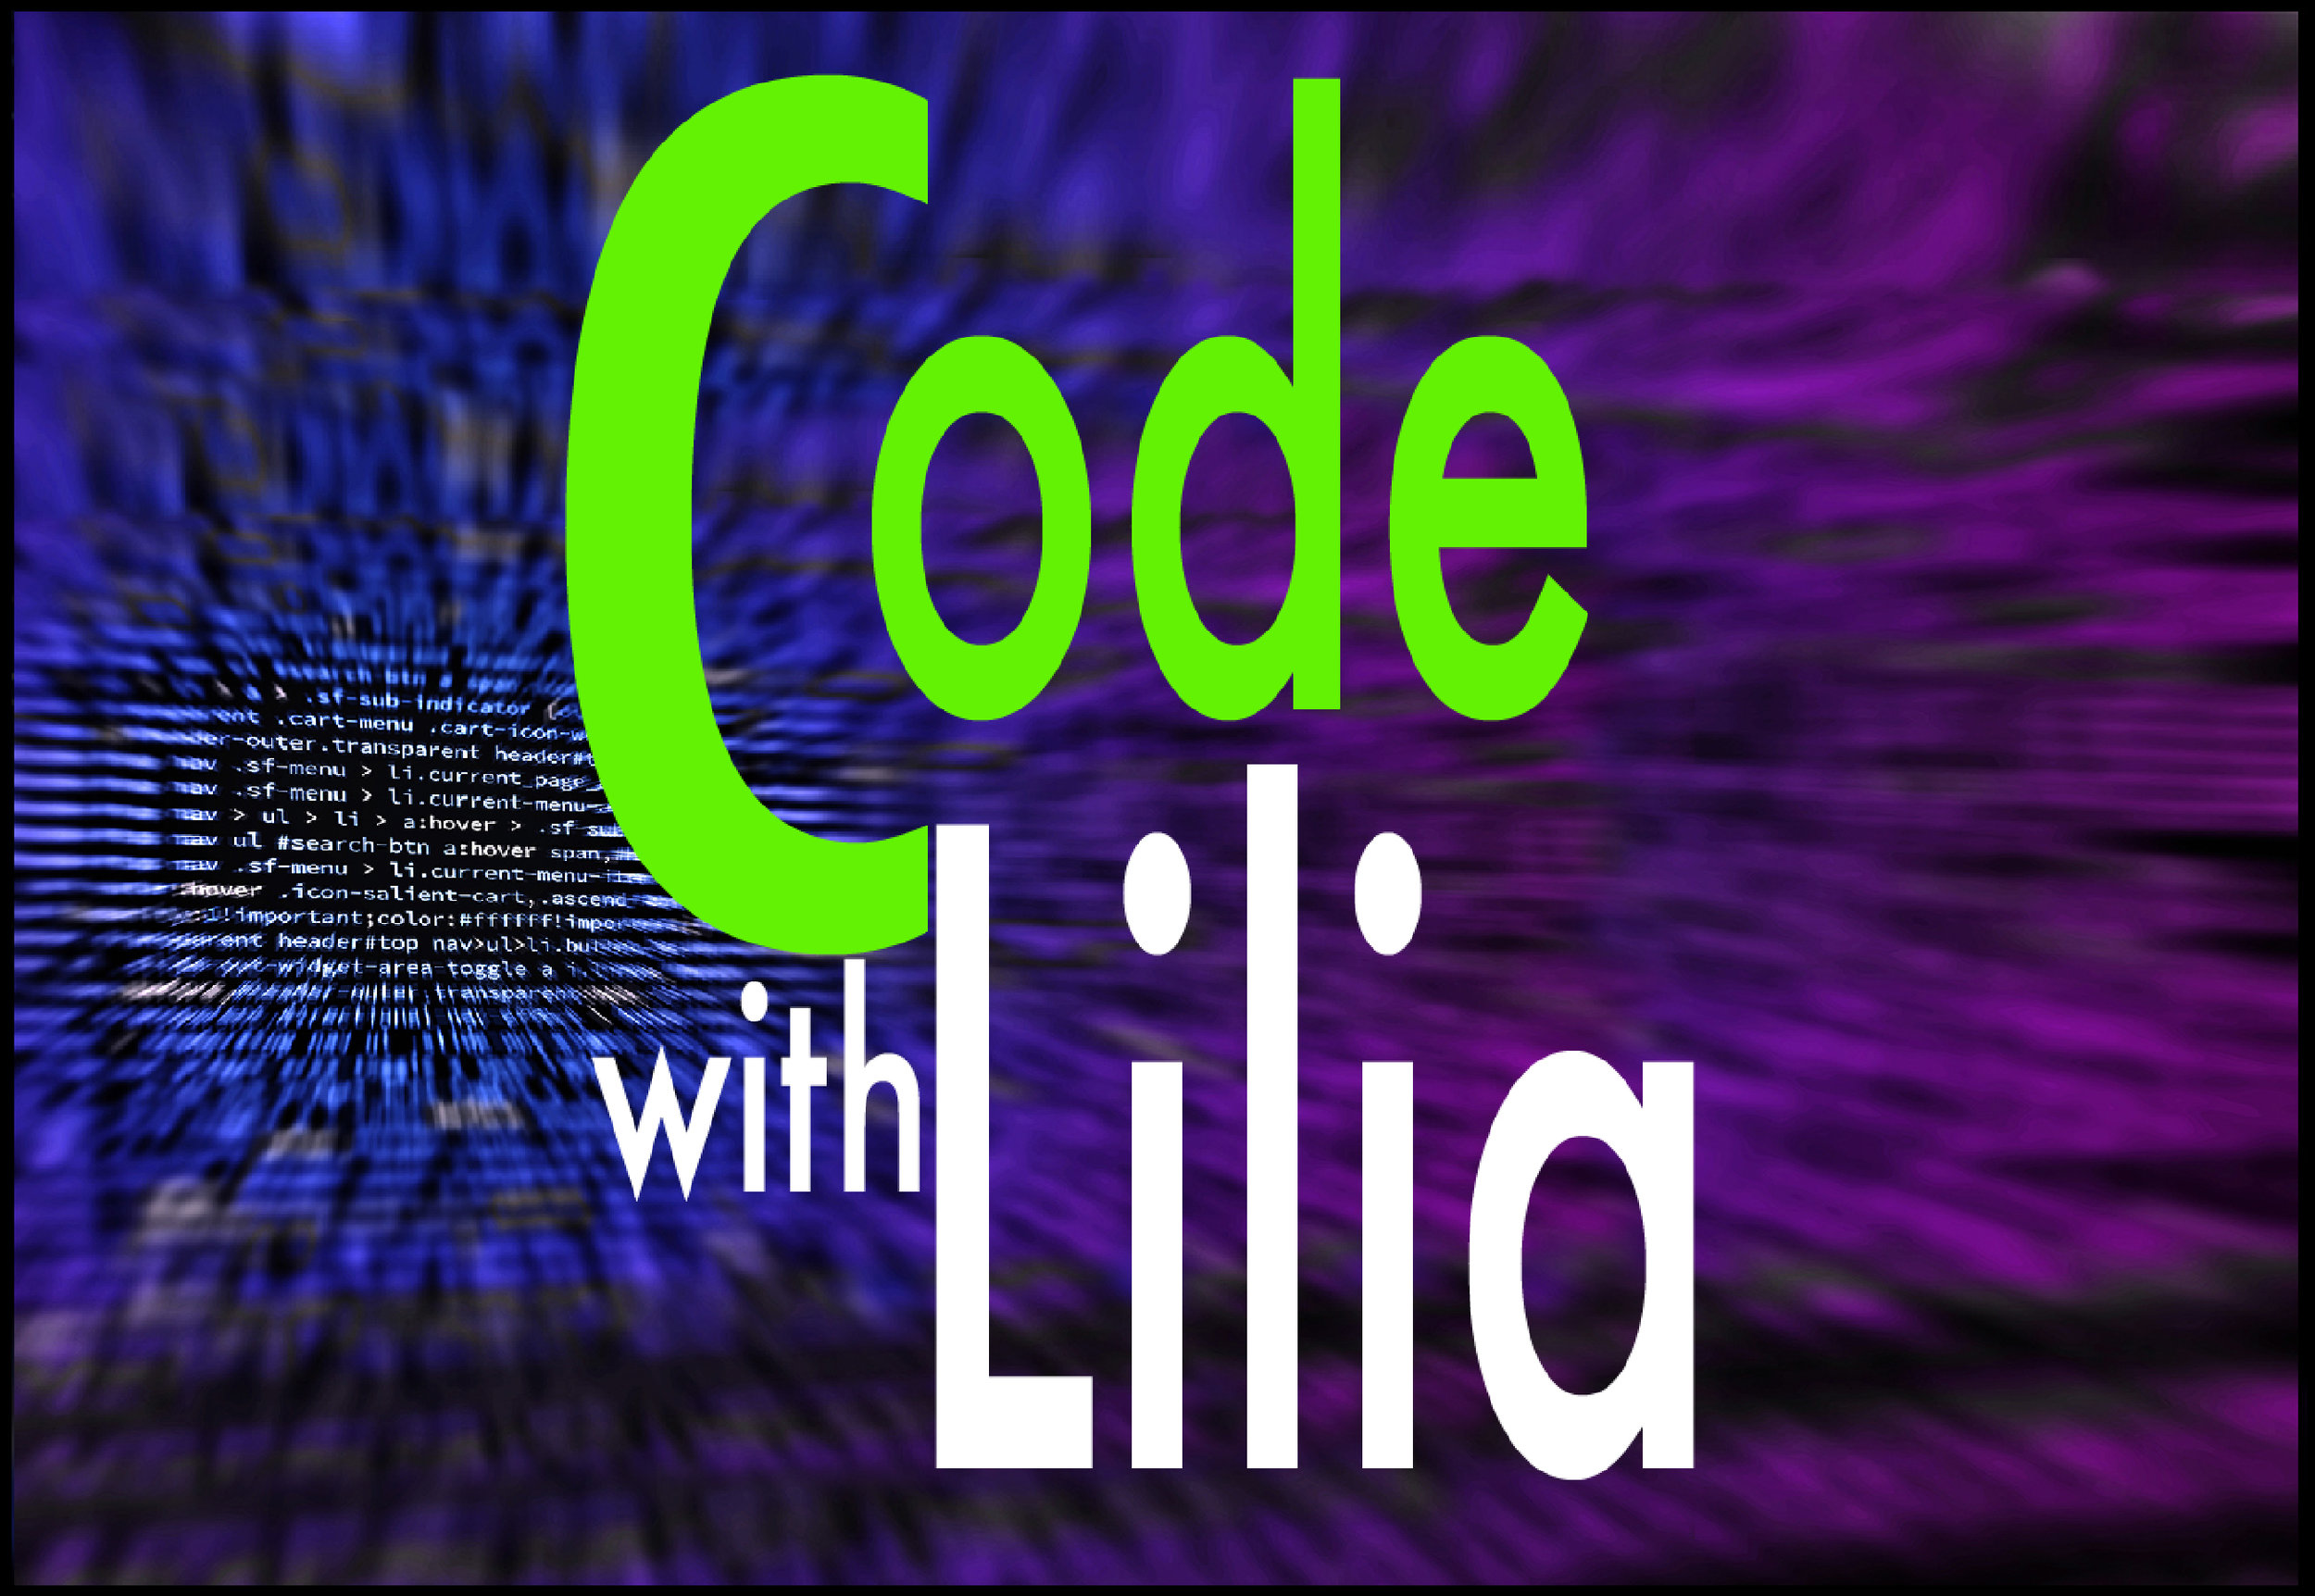 On December 20, 2017,Lilia Becker will introduce JavaScript coding to  Young Entrepreneurs Academy  students at Cabrini University, in Bryn Mawr, PA. For more information go to www.CodewithLilia.org